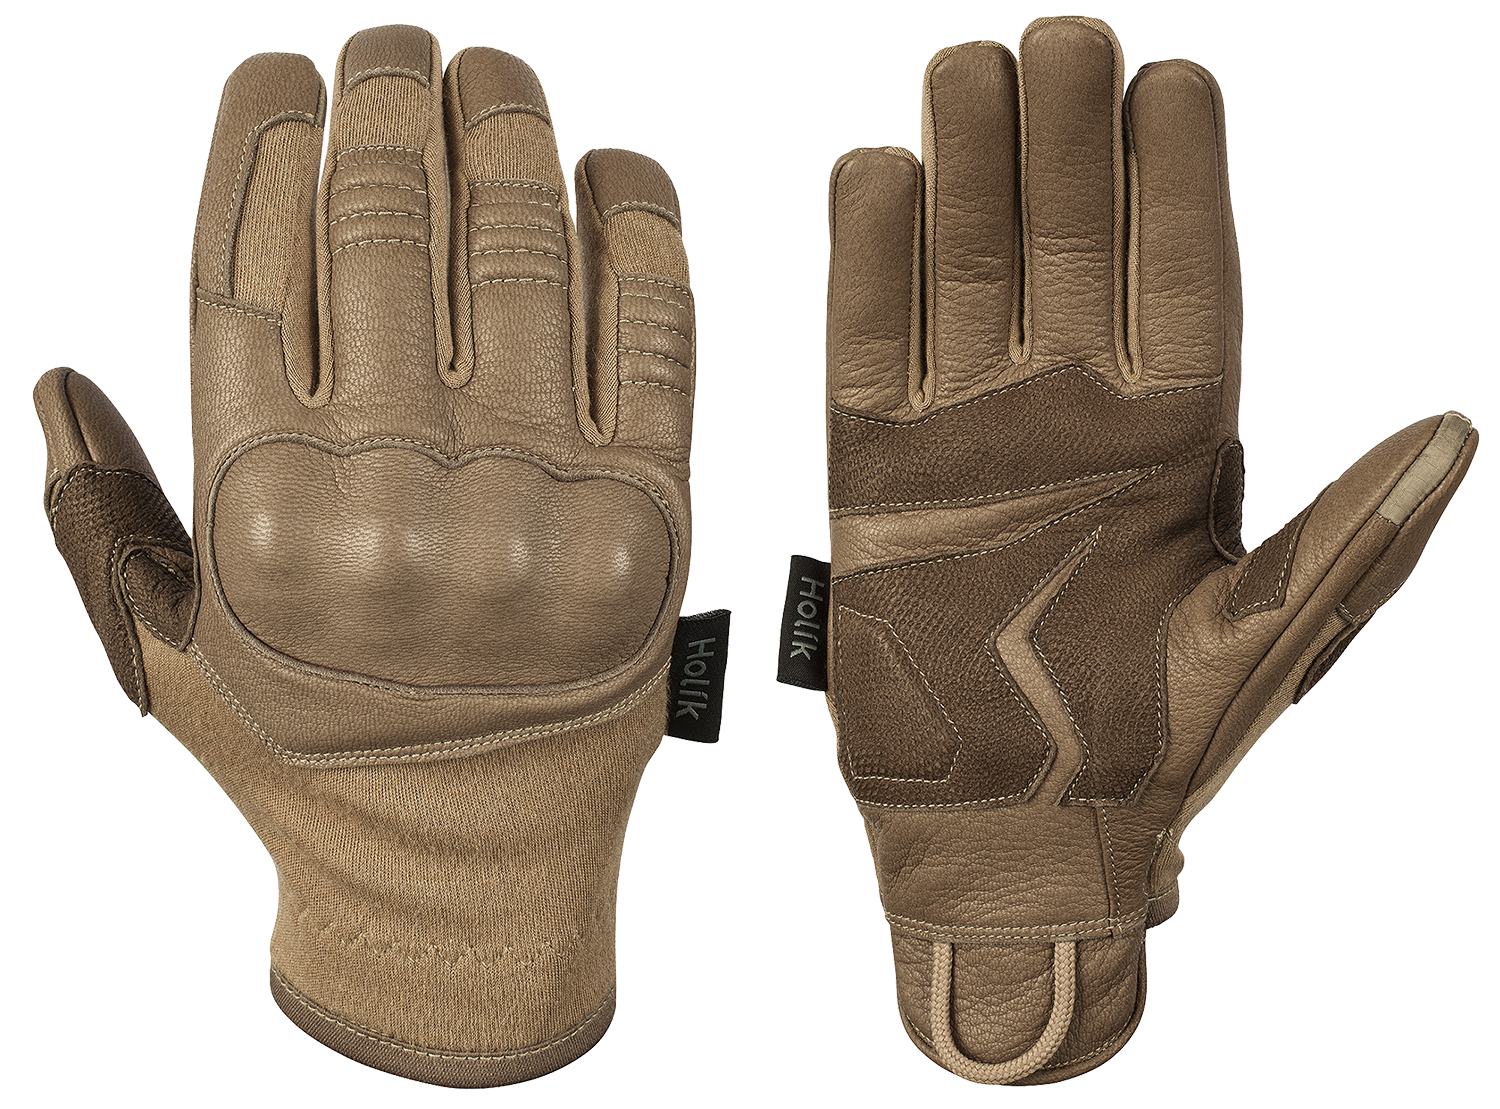 Heavy Duty Gloves AINI Touch - Coyote